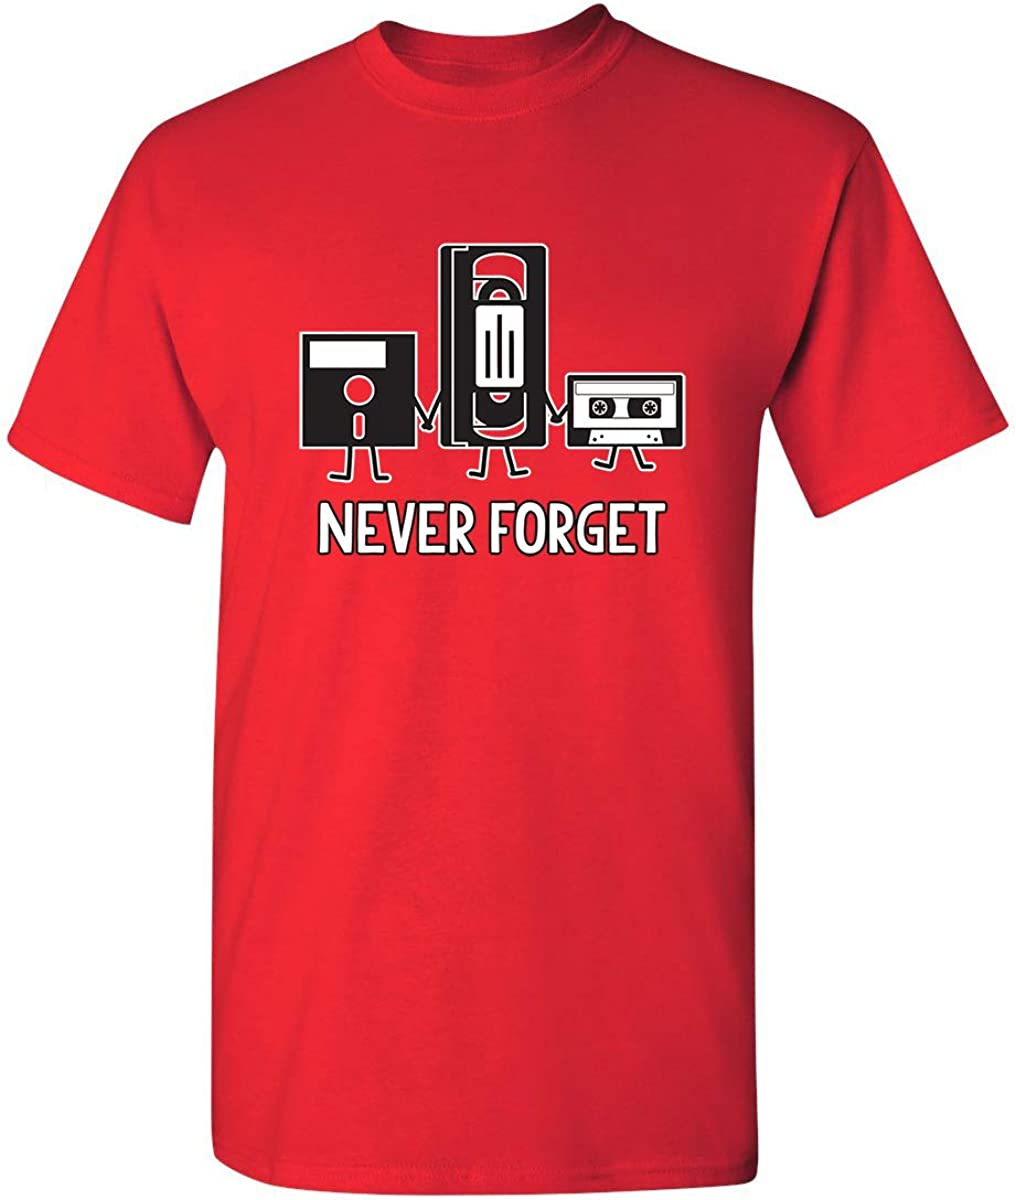 Never Forget Funny Retro Guys Gift Idea Music Mens Novelty Funny T Shirt